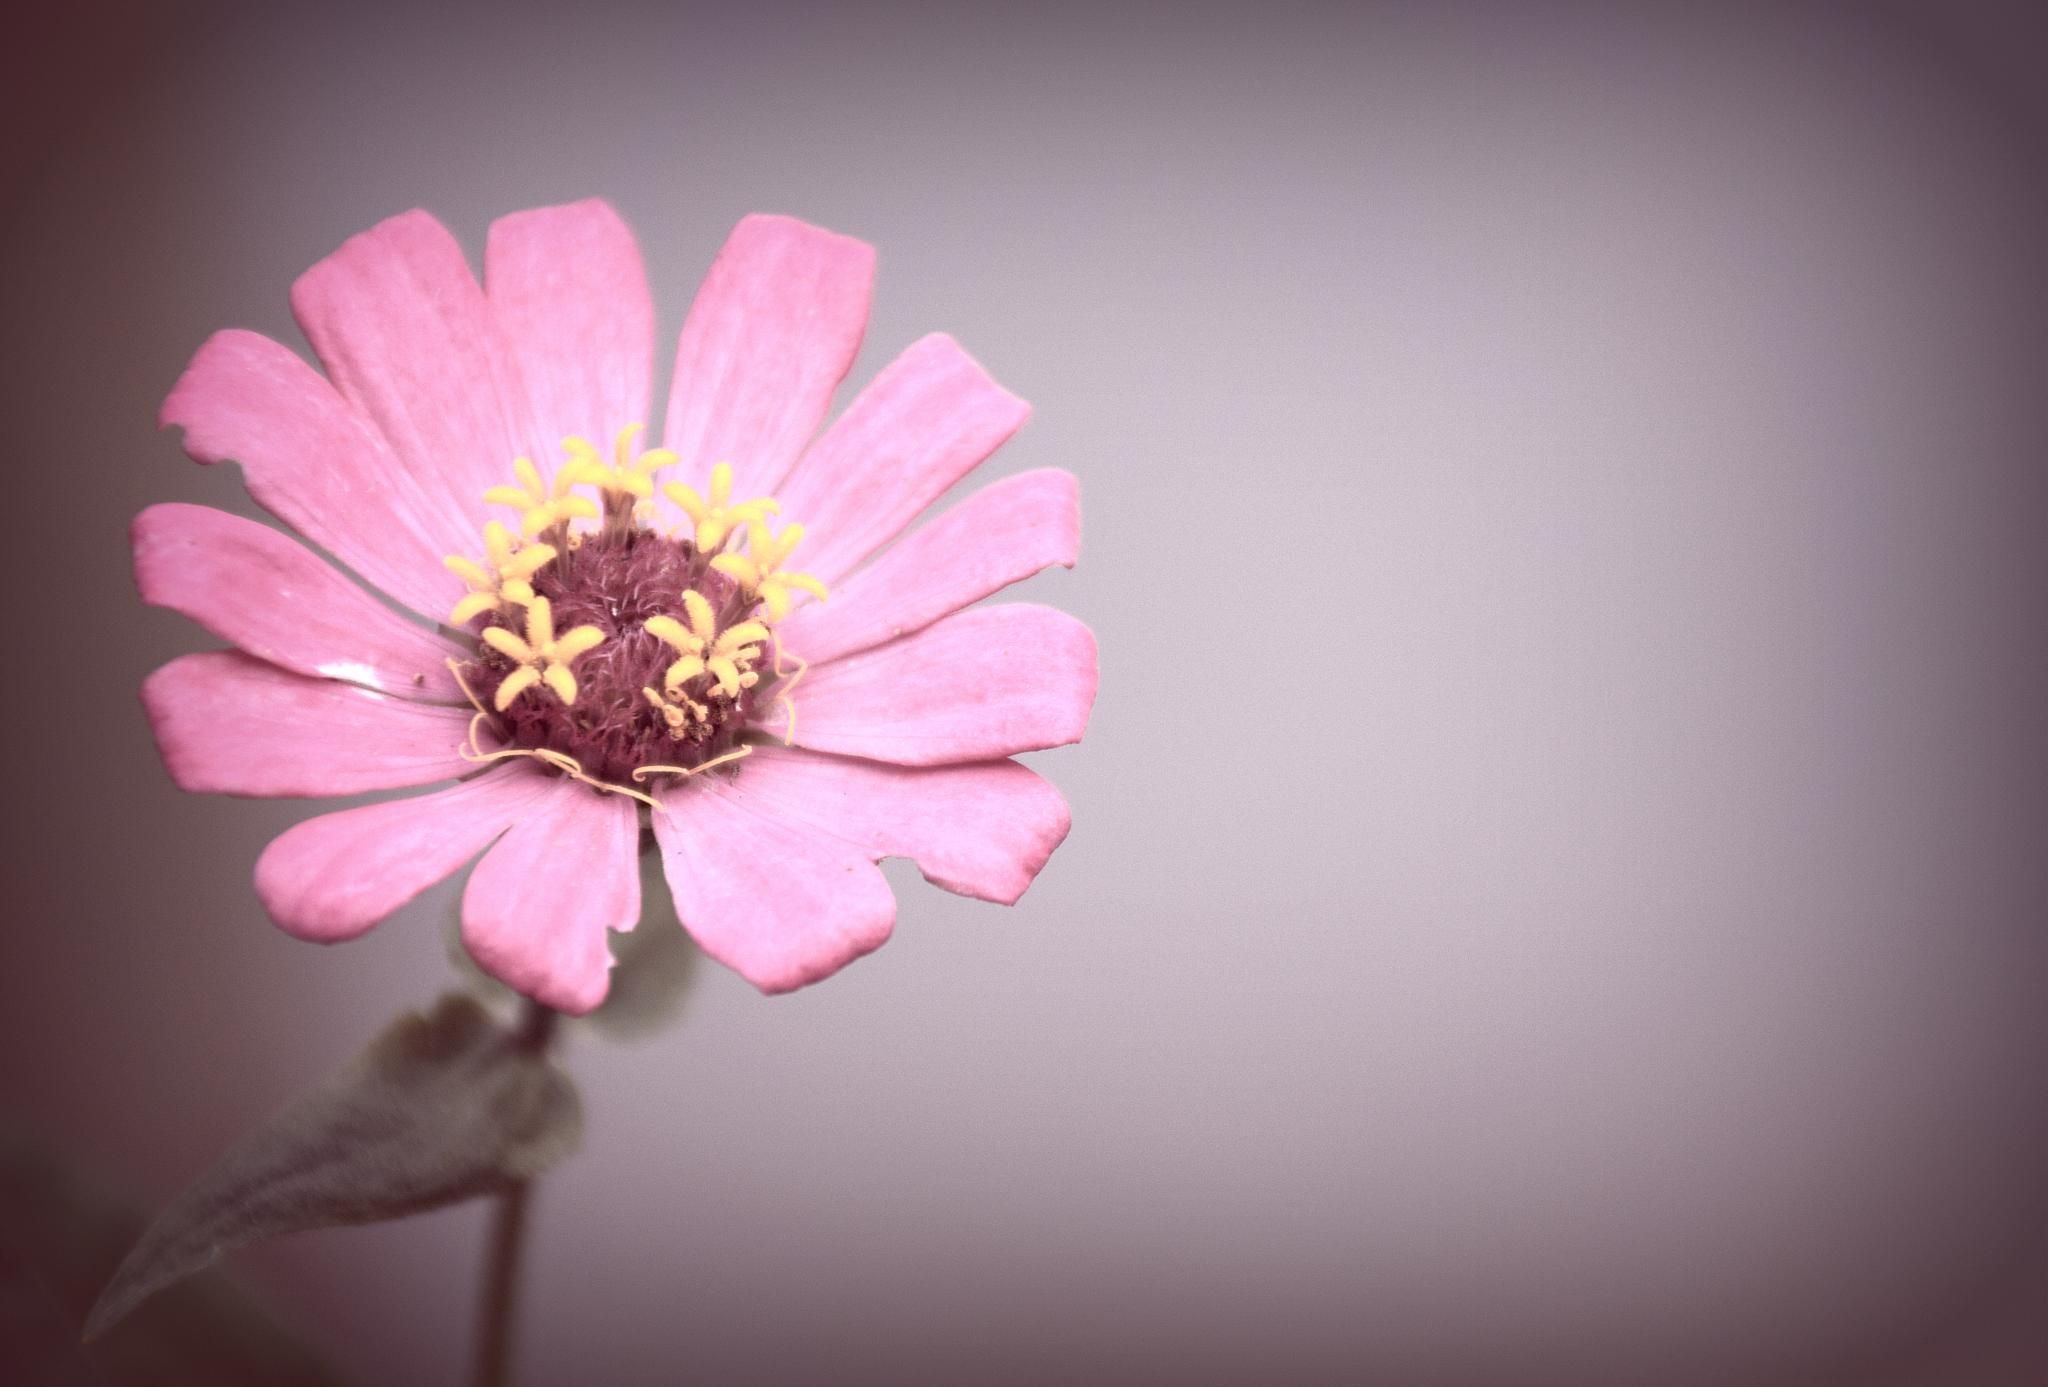 A Flower by aronrielle